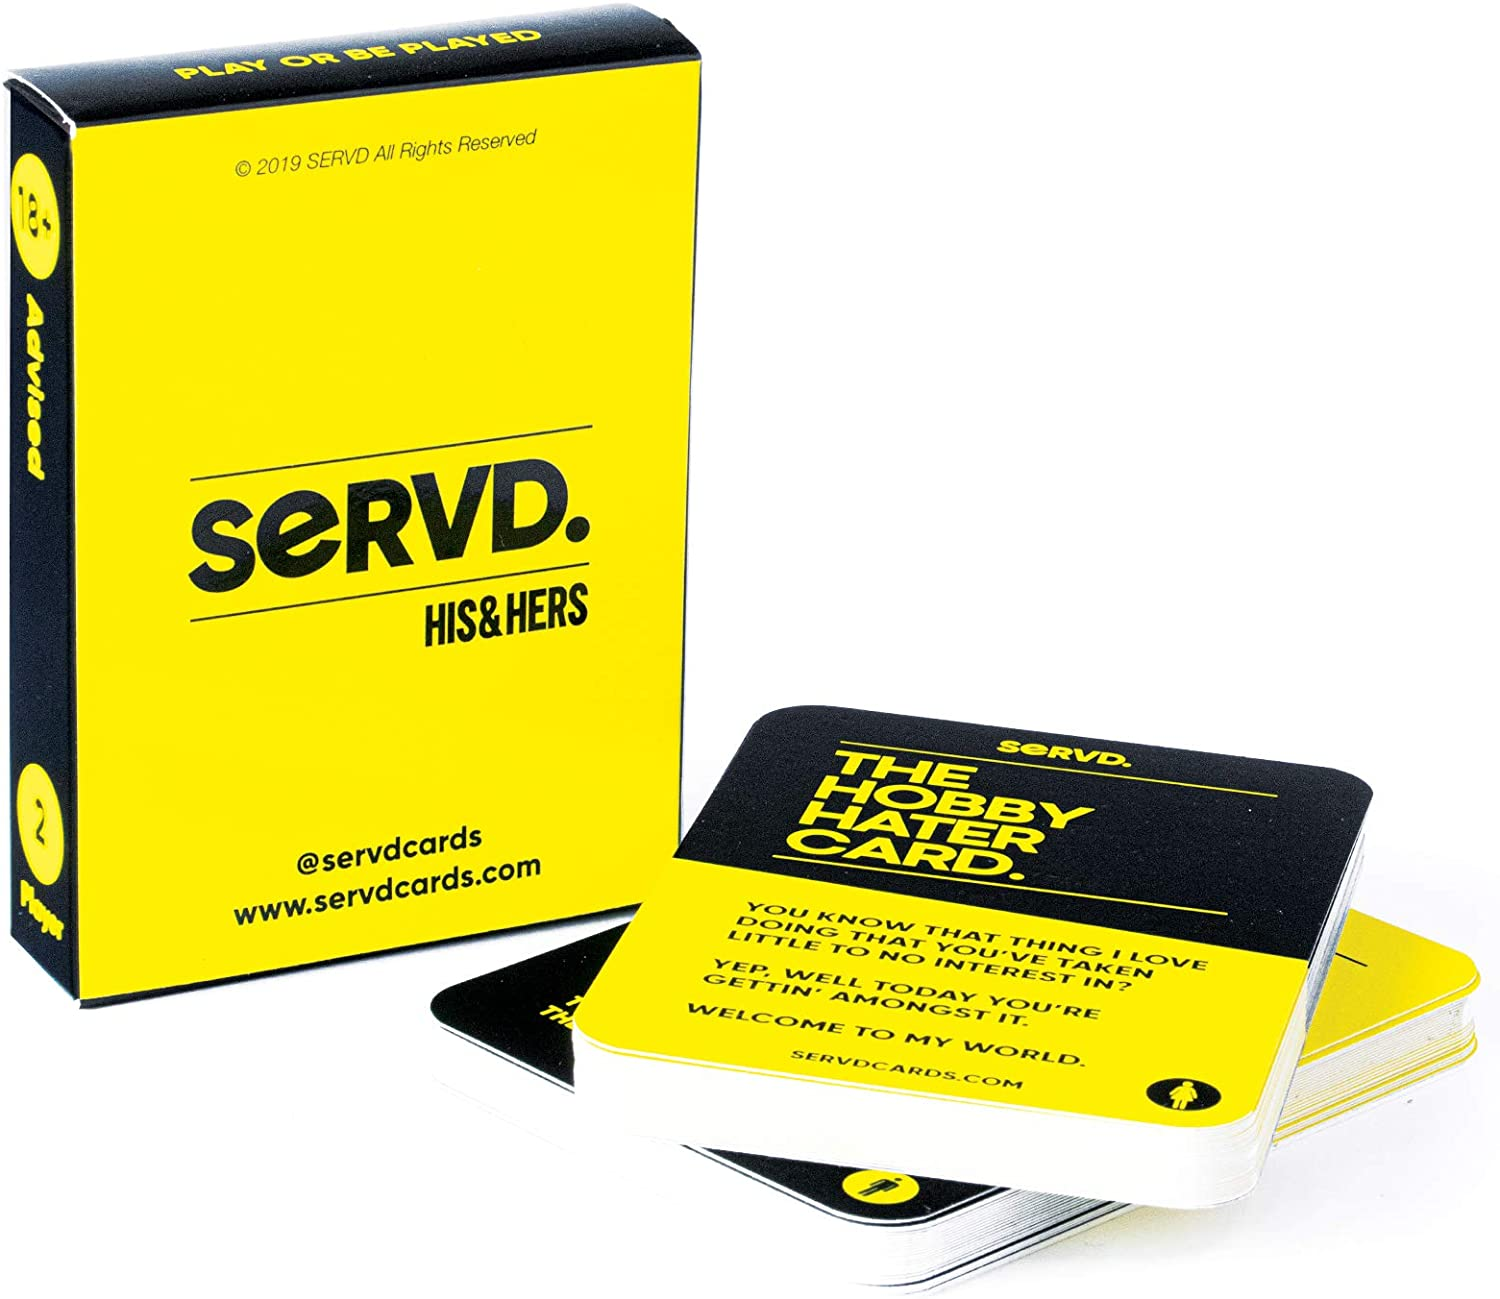 "An image of a card game for couples ""SERVD. His and Hers."" in yellow box."